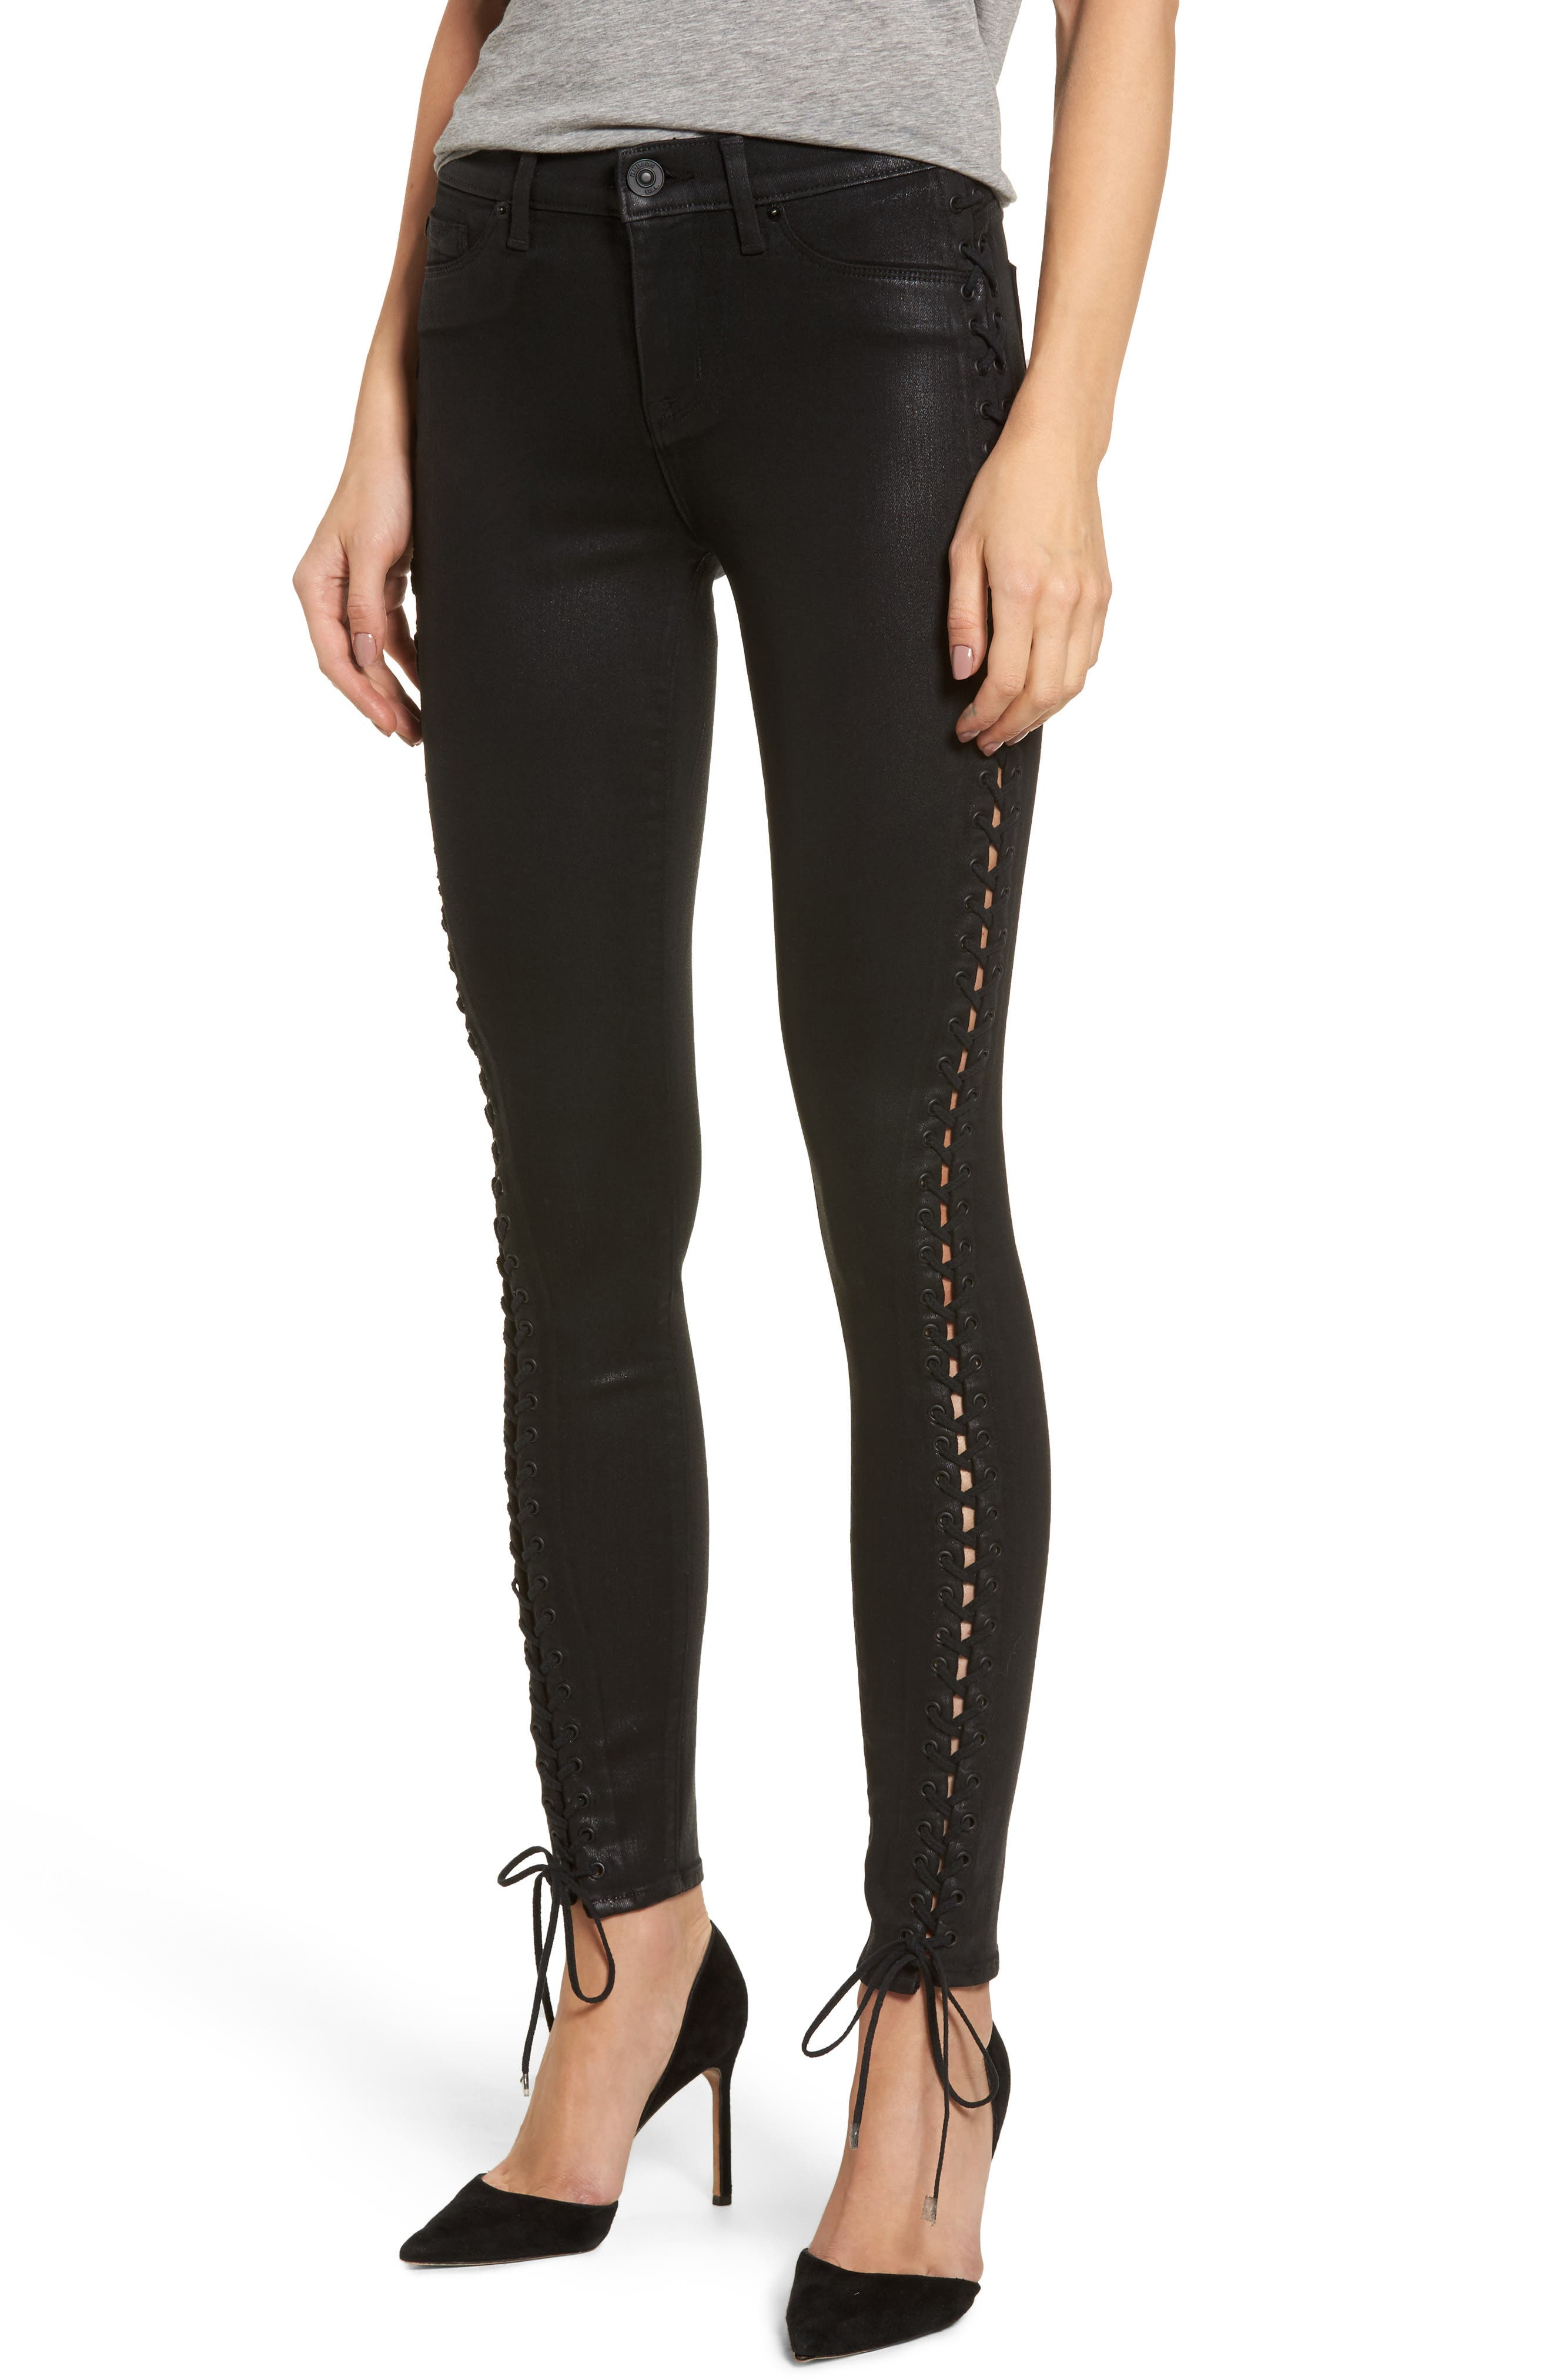 Alternate Image 1 Selected - Hudson Jeans Stevie Lace-Up Skinny Jeans (Black Coated)